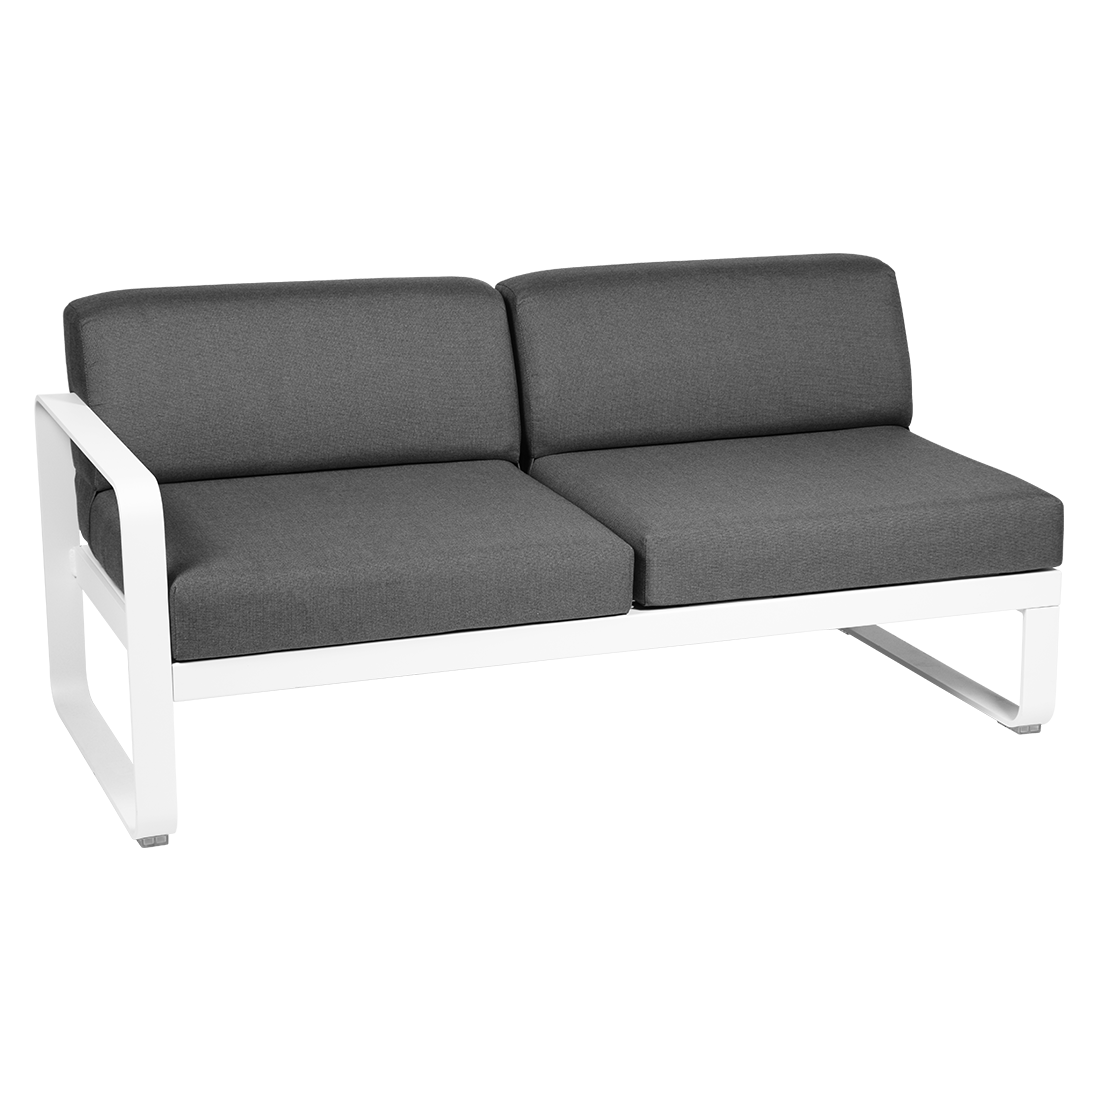 Bellevie 2 Seater Left Module - Graphite Grey Cushions